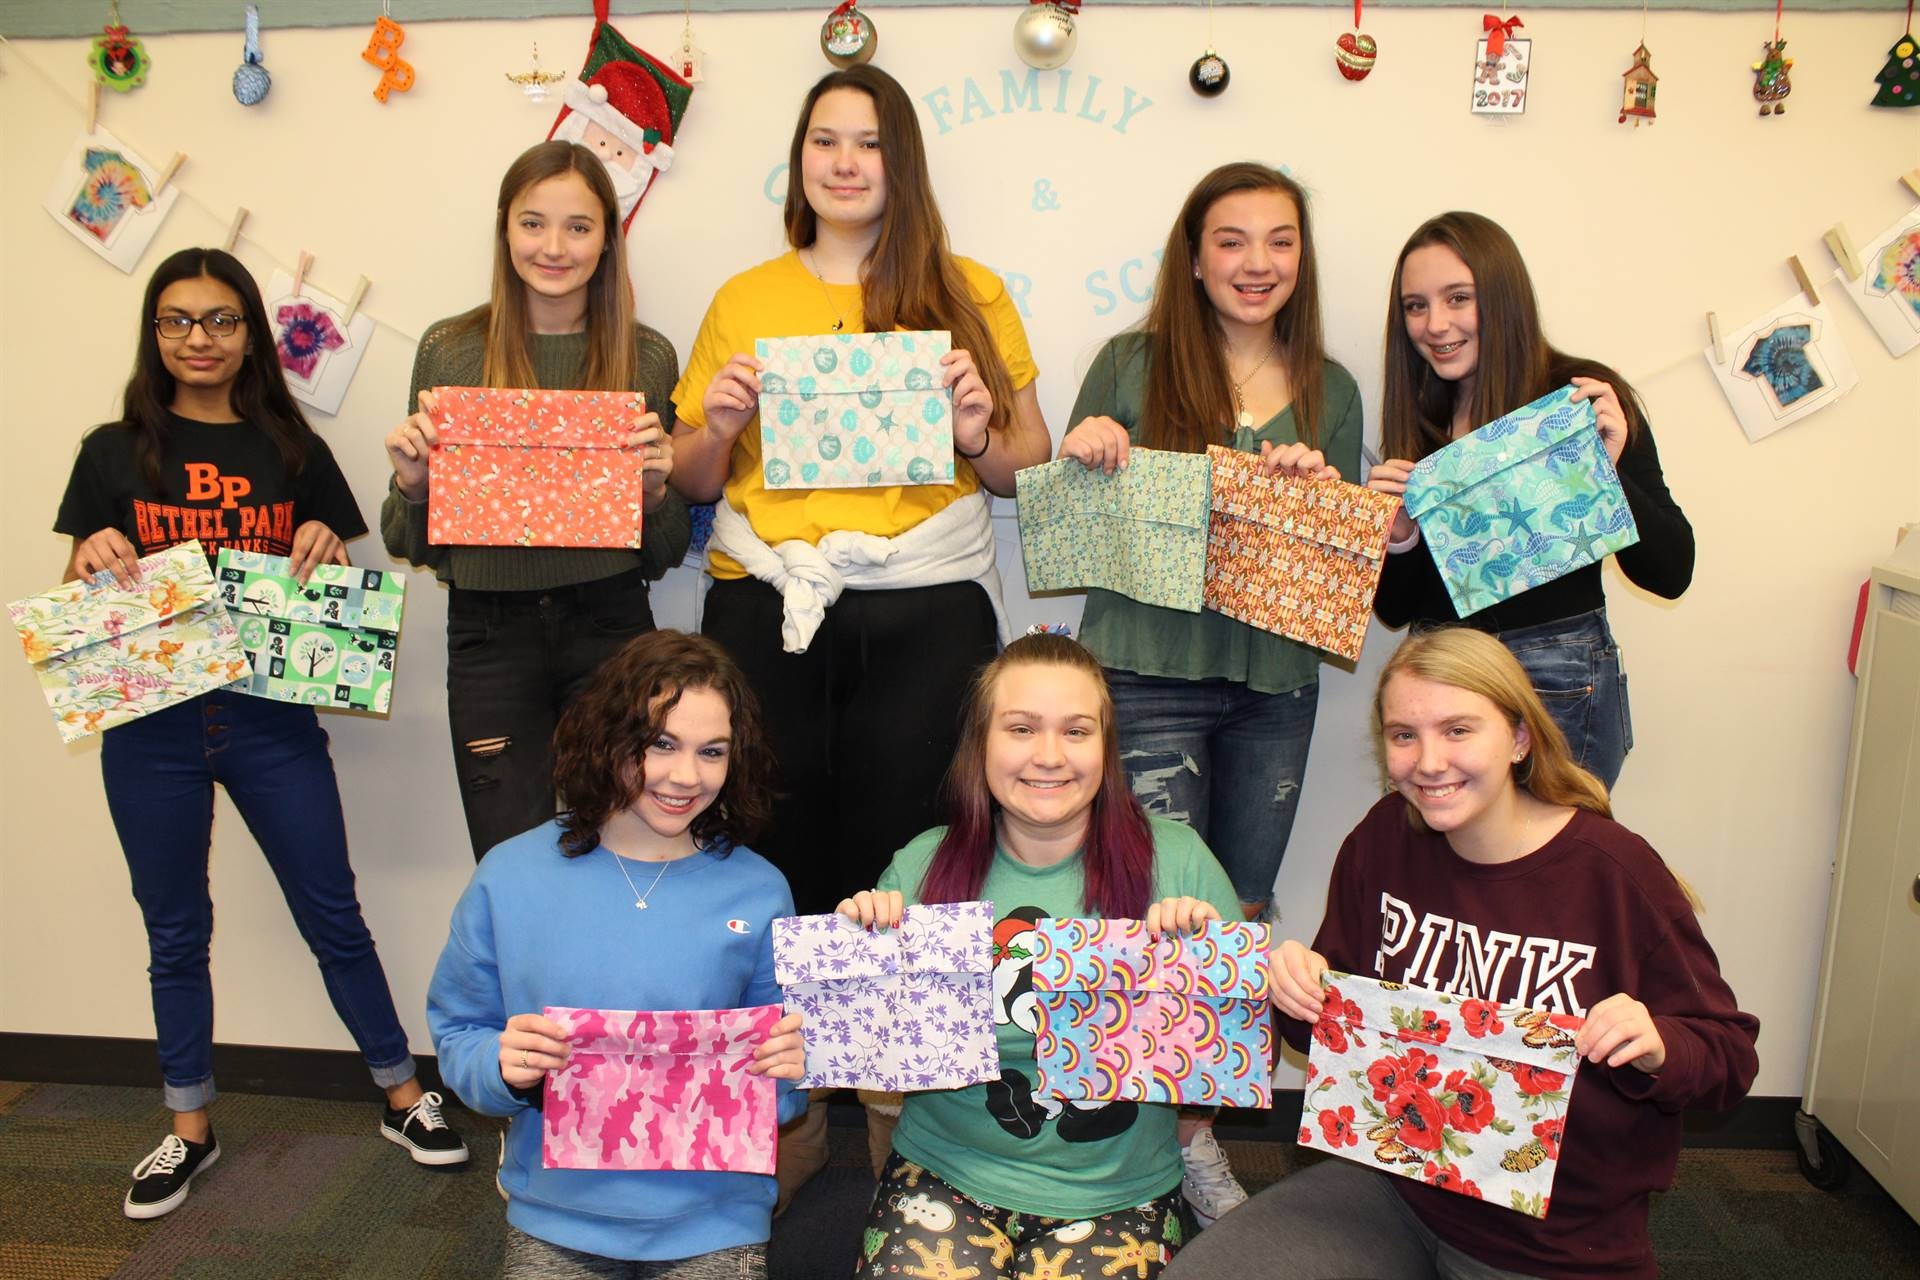 Eight Sewing students with their projects